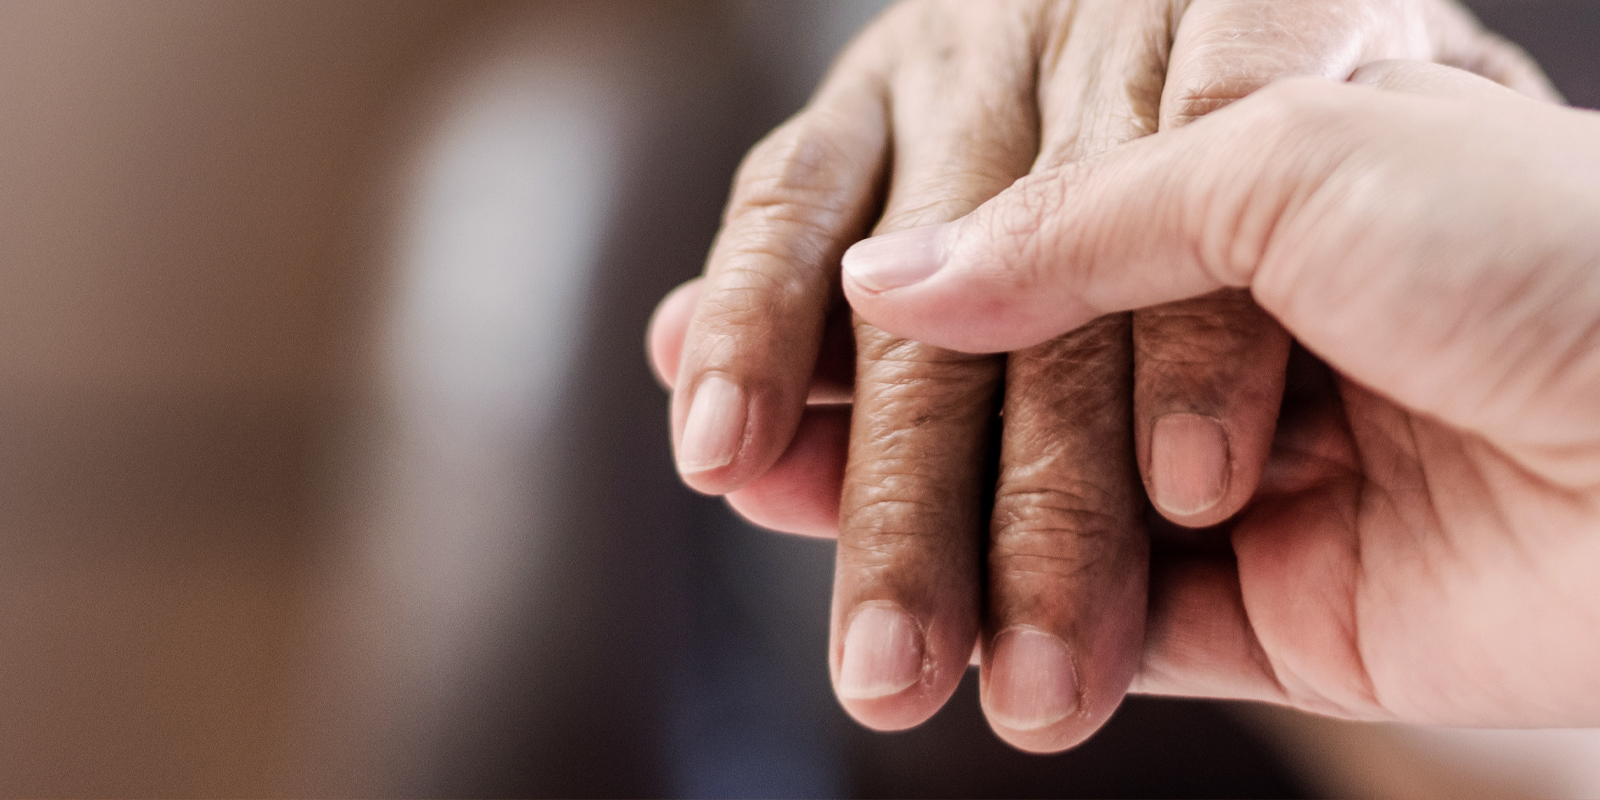 An image of a younger person holding the hand of the older person